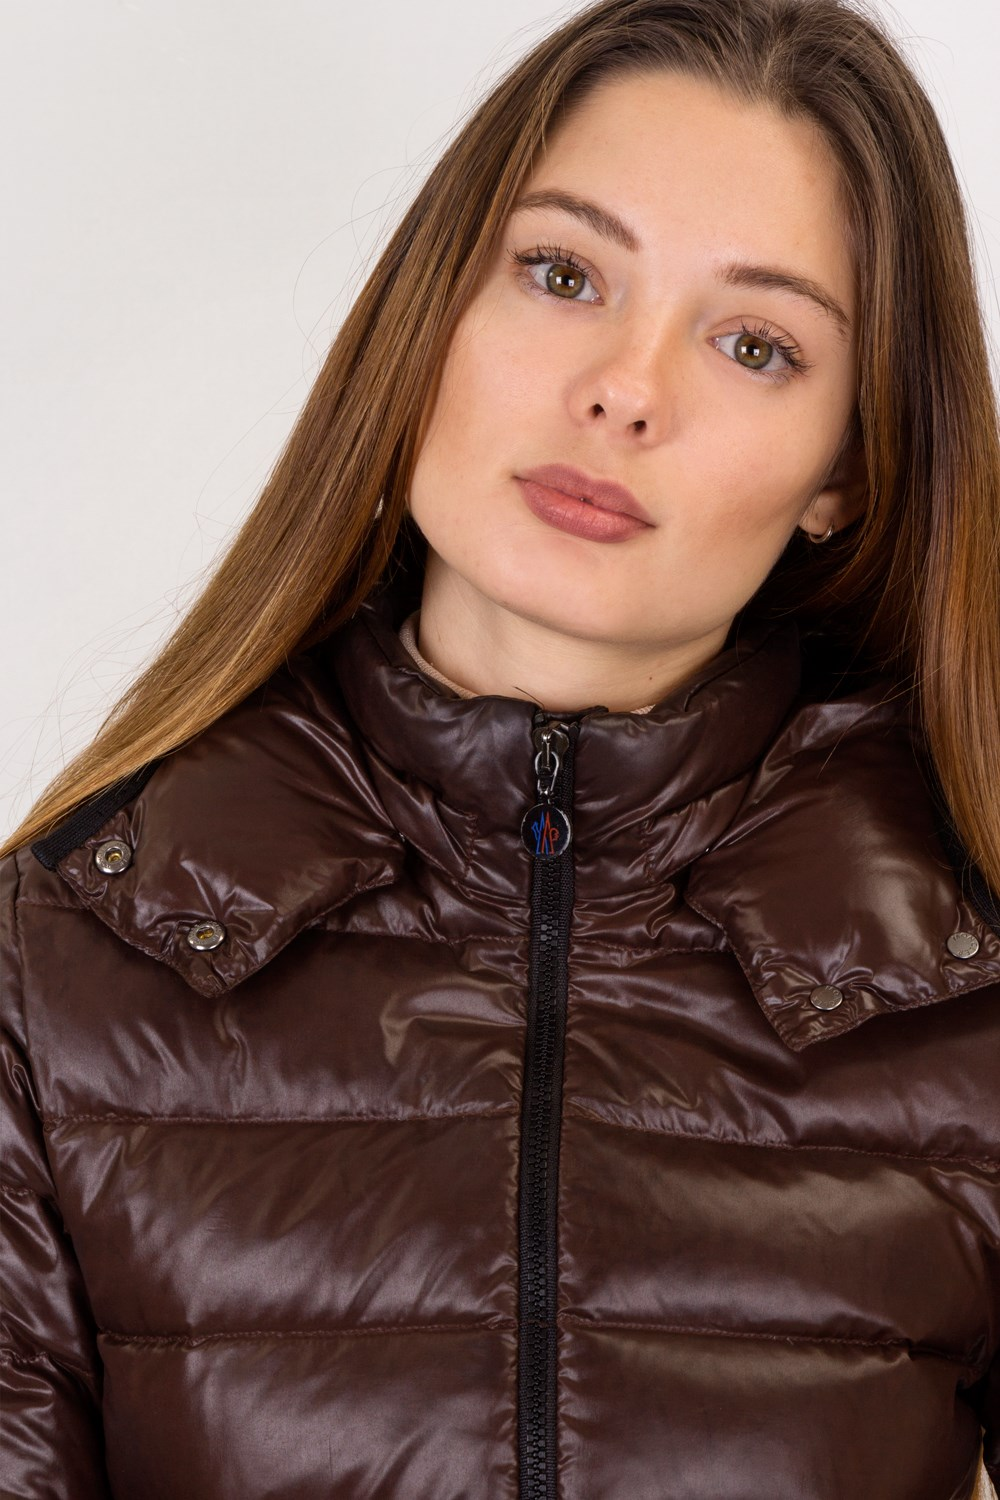 c93c5abec1c4 ... Brown Puffer Down Jacket   Size  12 ans - Fit for adults  XS. starbags  video